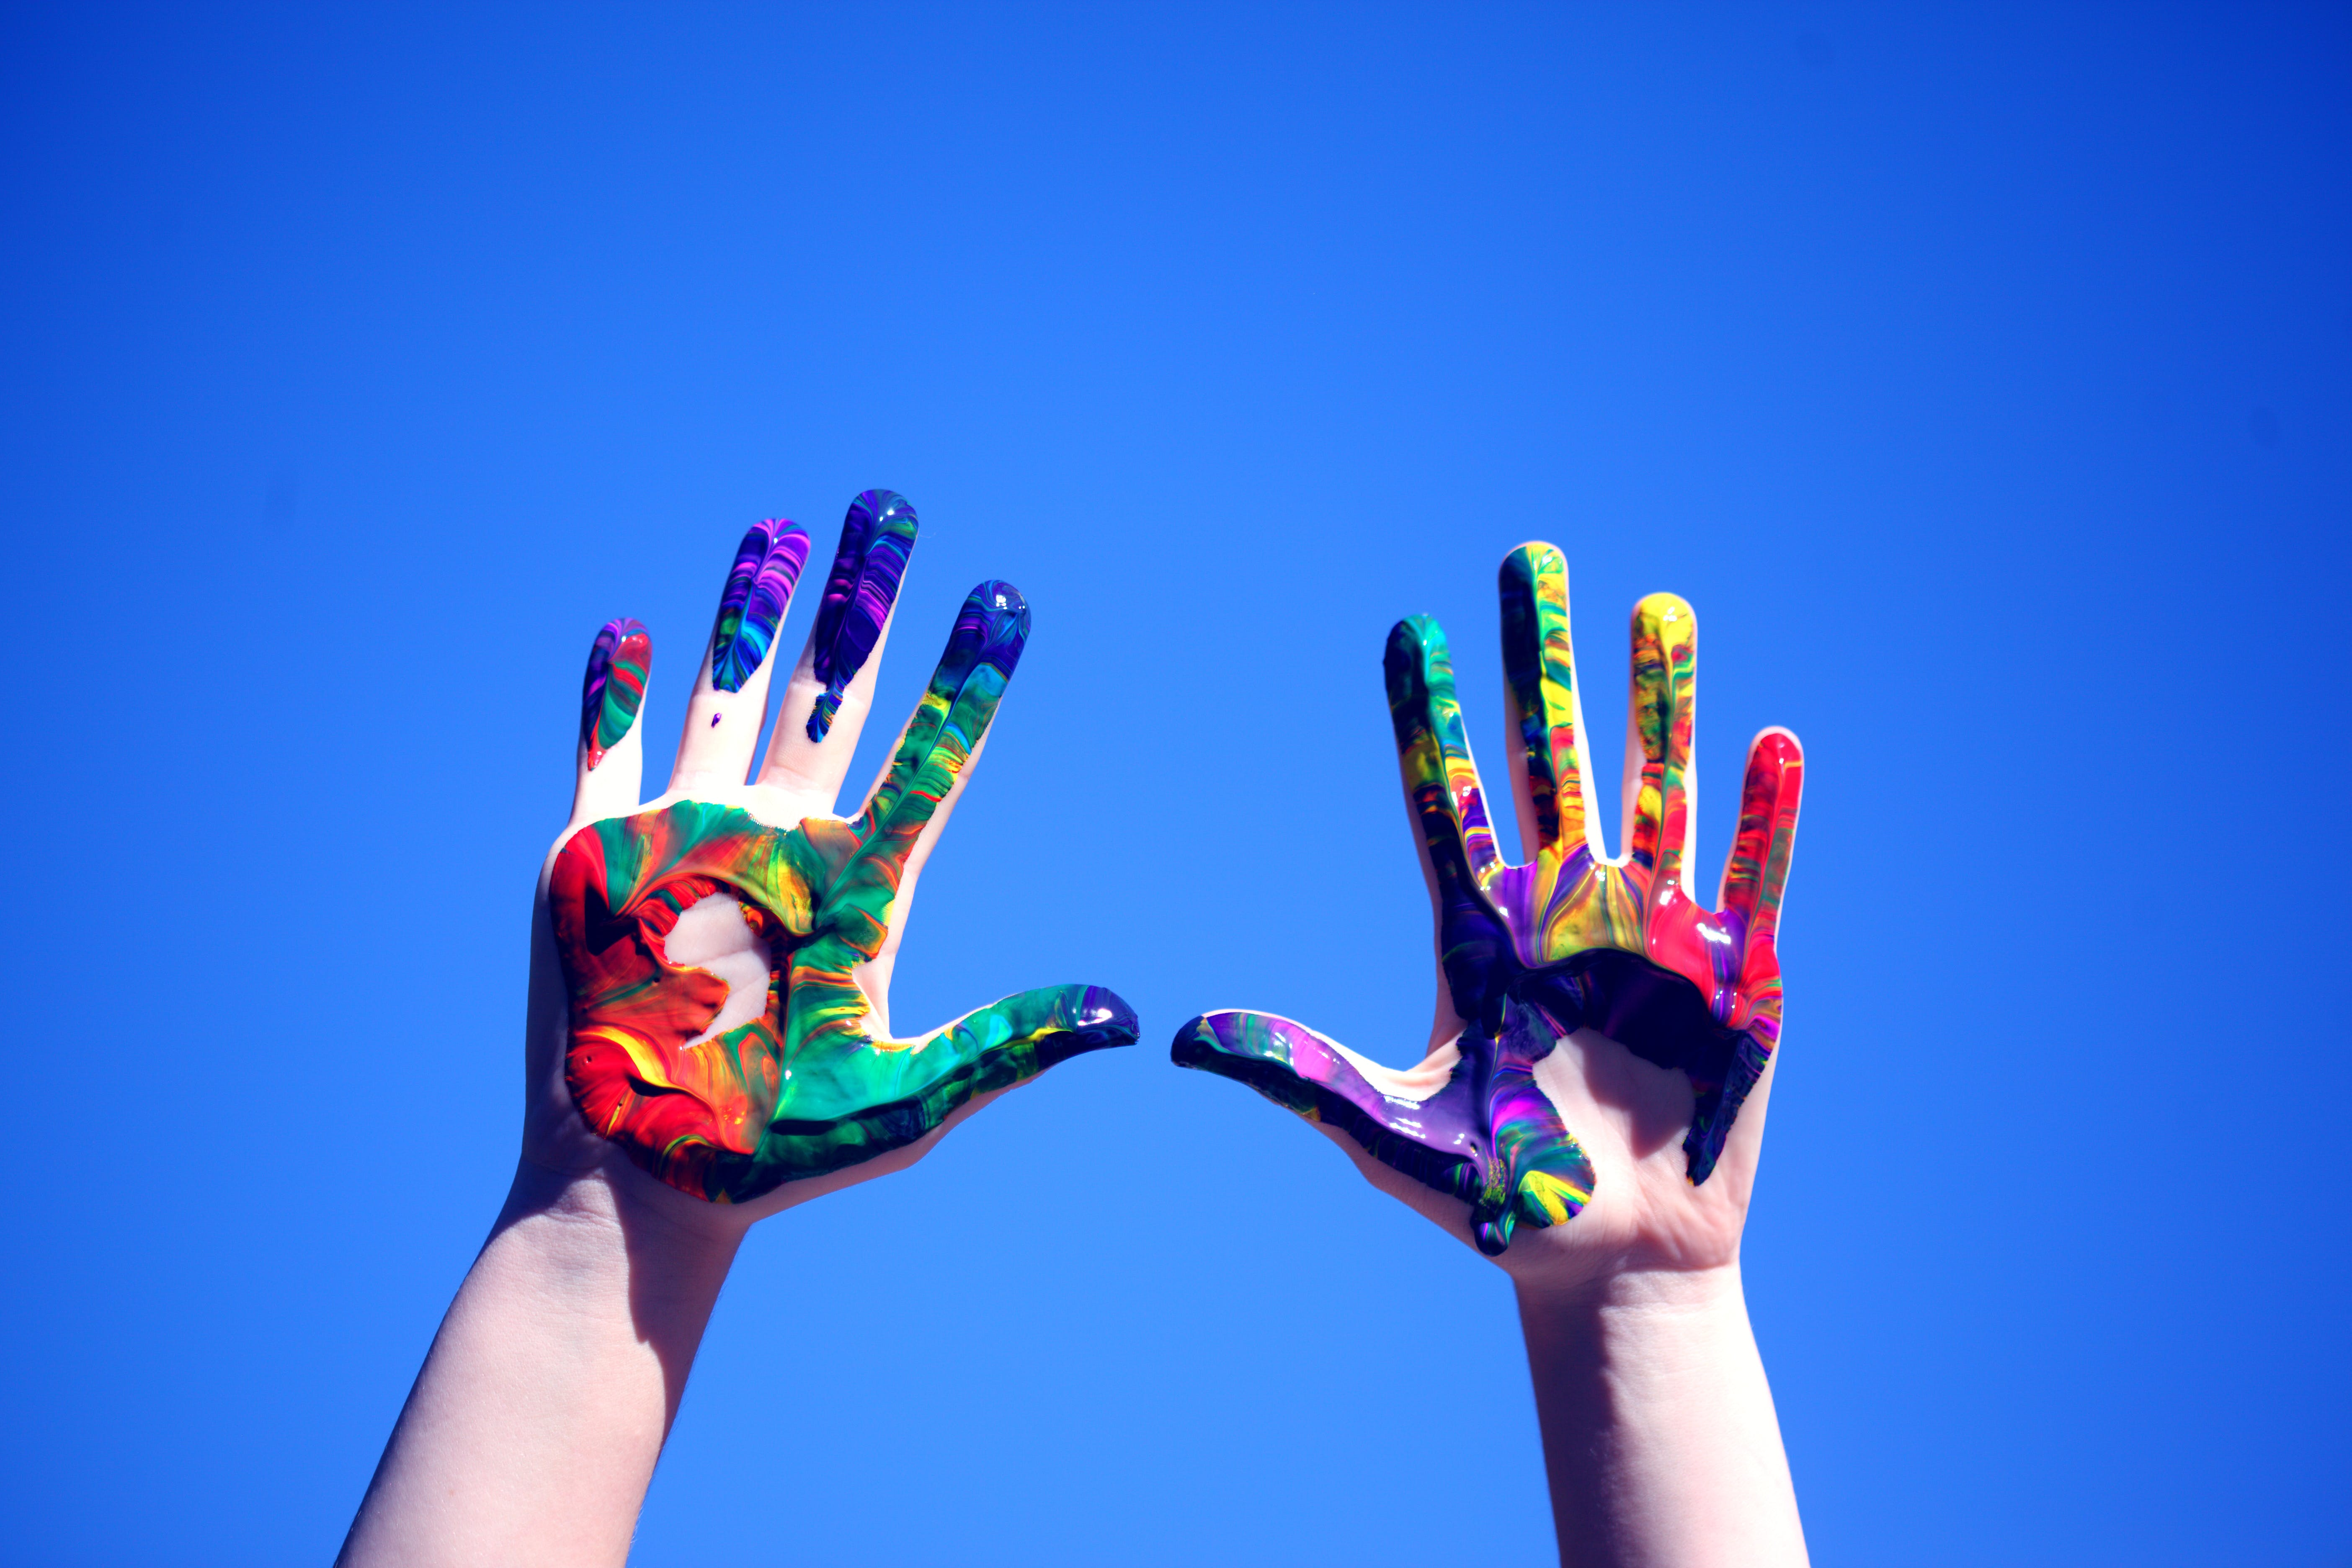 Person's Hands With Paint